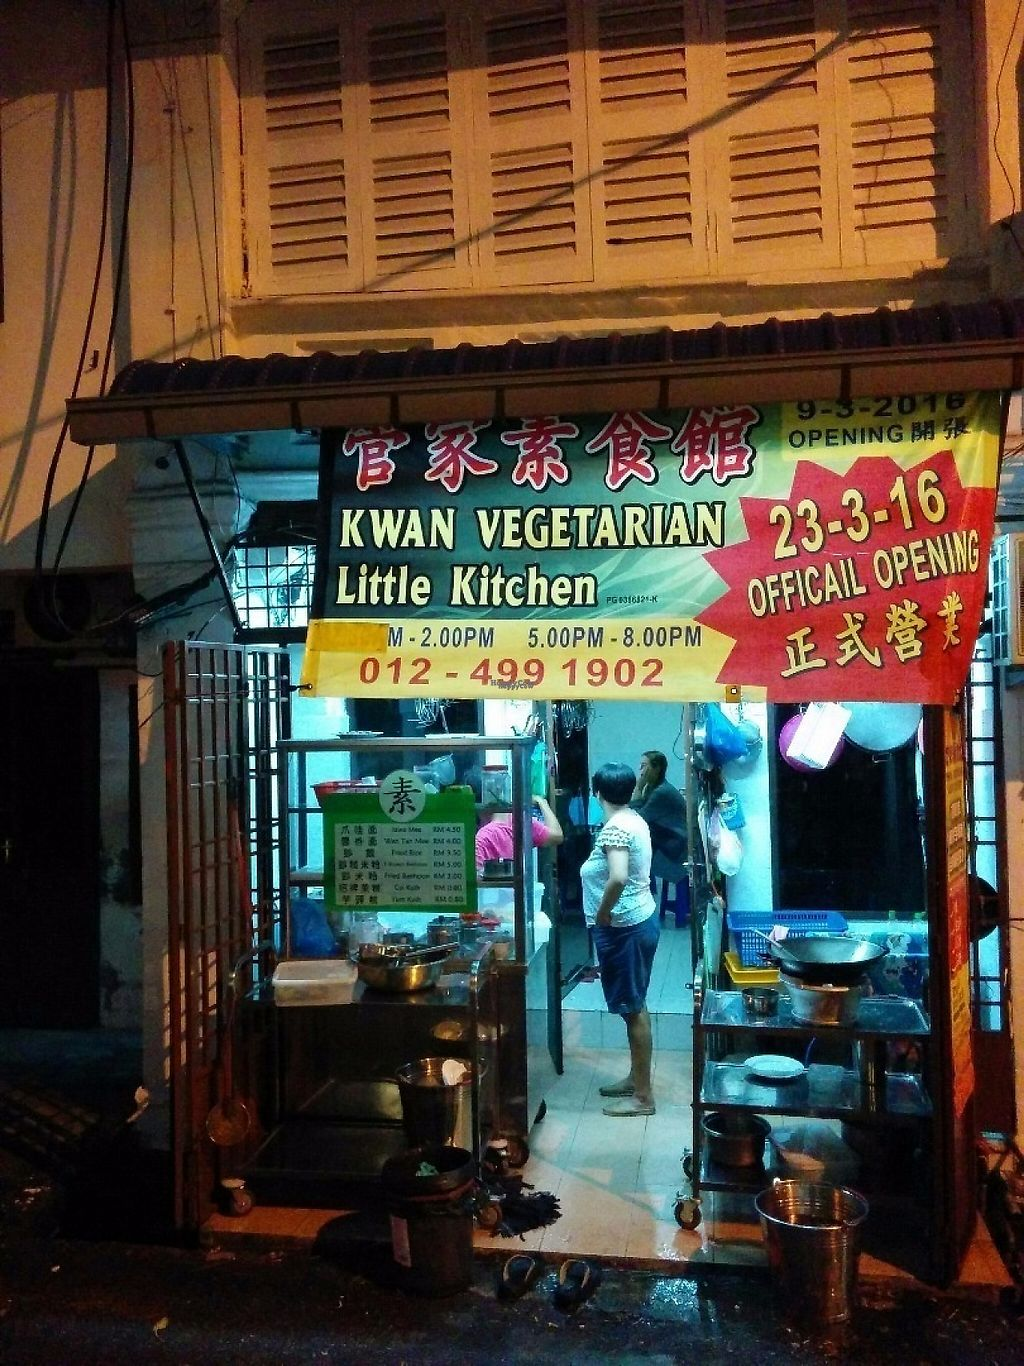 """Photo of Kwan Vegetarian Little Kitchen  by <a href=""""/members/profile/vince_kipp"""">vince_kipp</a> <br/>Evening Action at Kwan Vegetarian Little Kitchen <br/> December 21, 2016  - <a href='/contact/abuse/image/75900/203352'>Report</a>"""